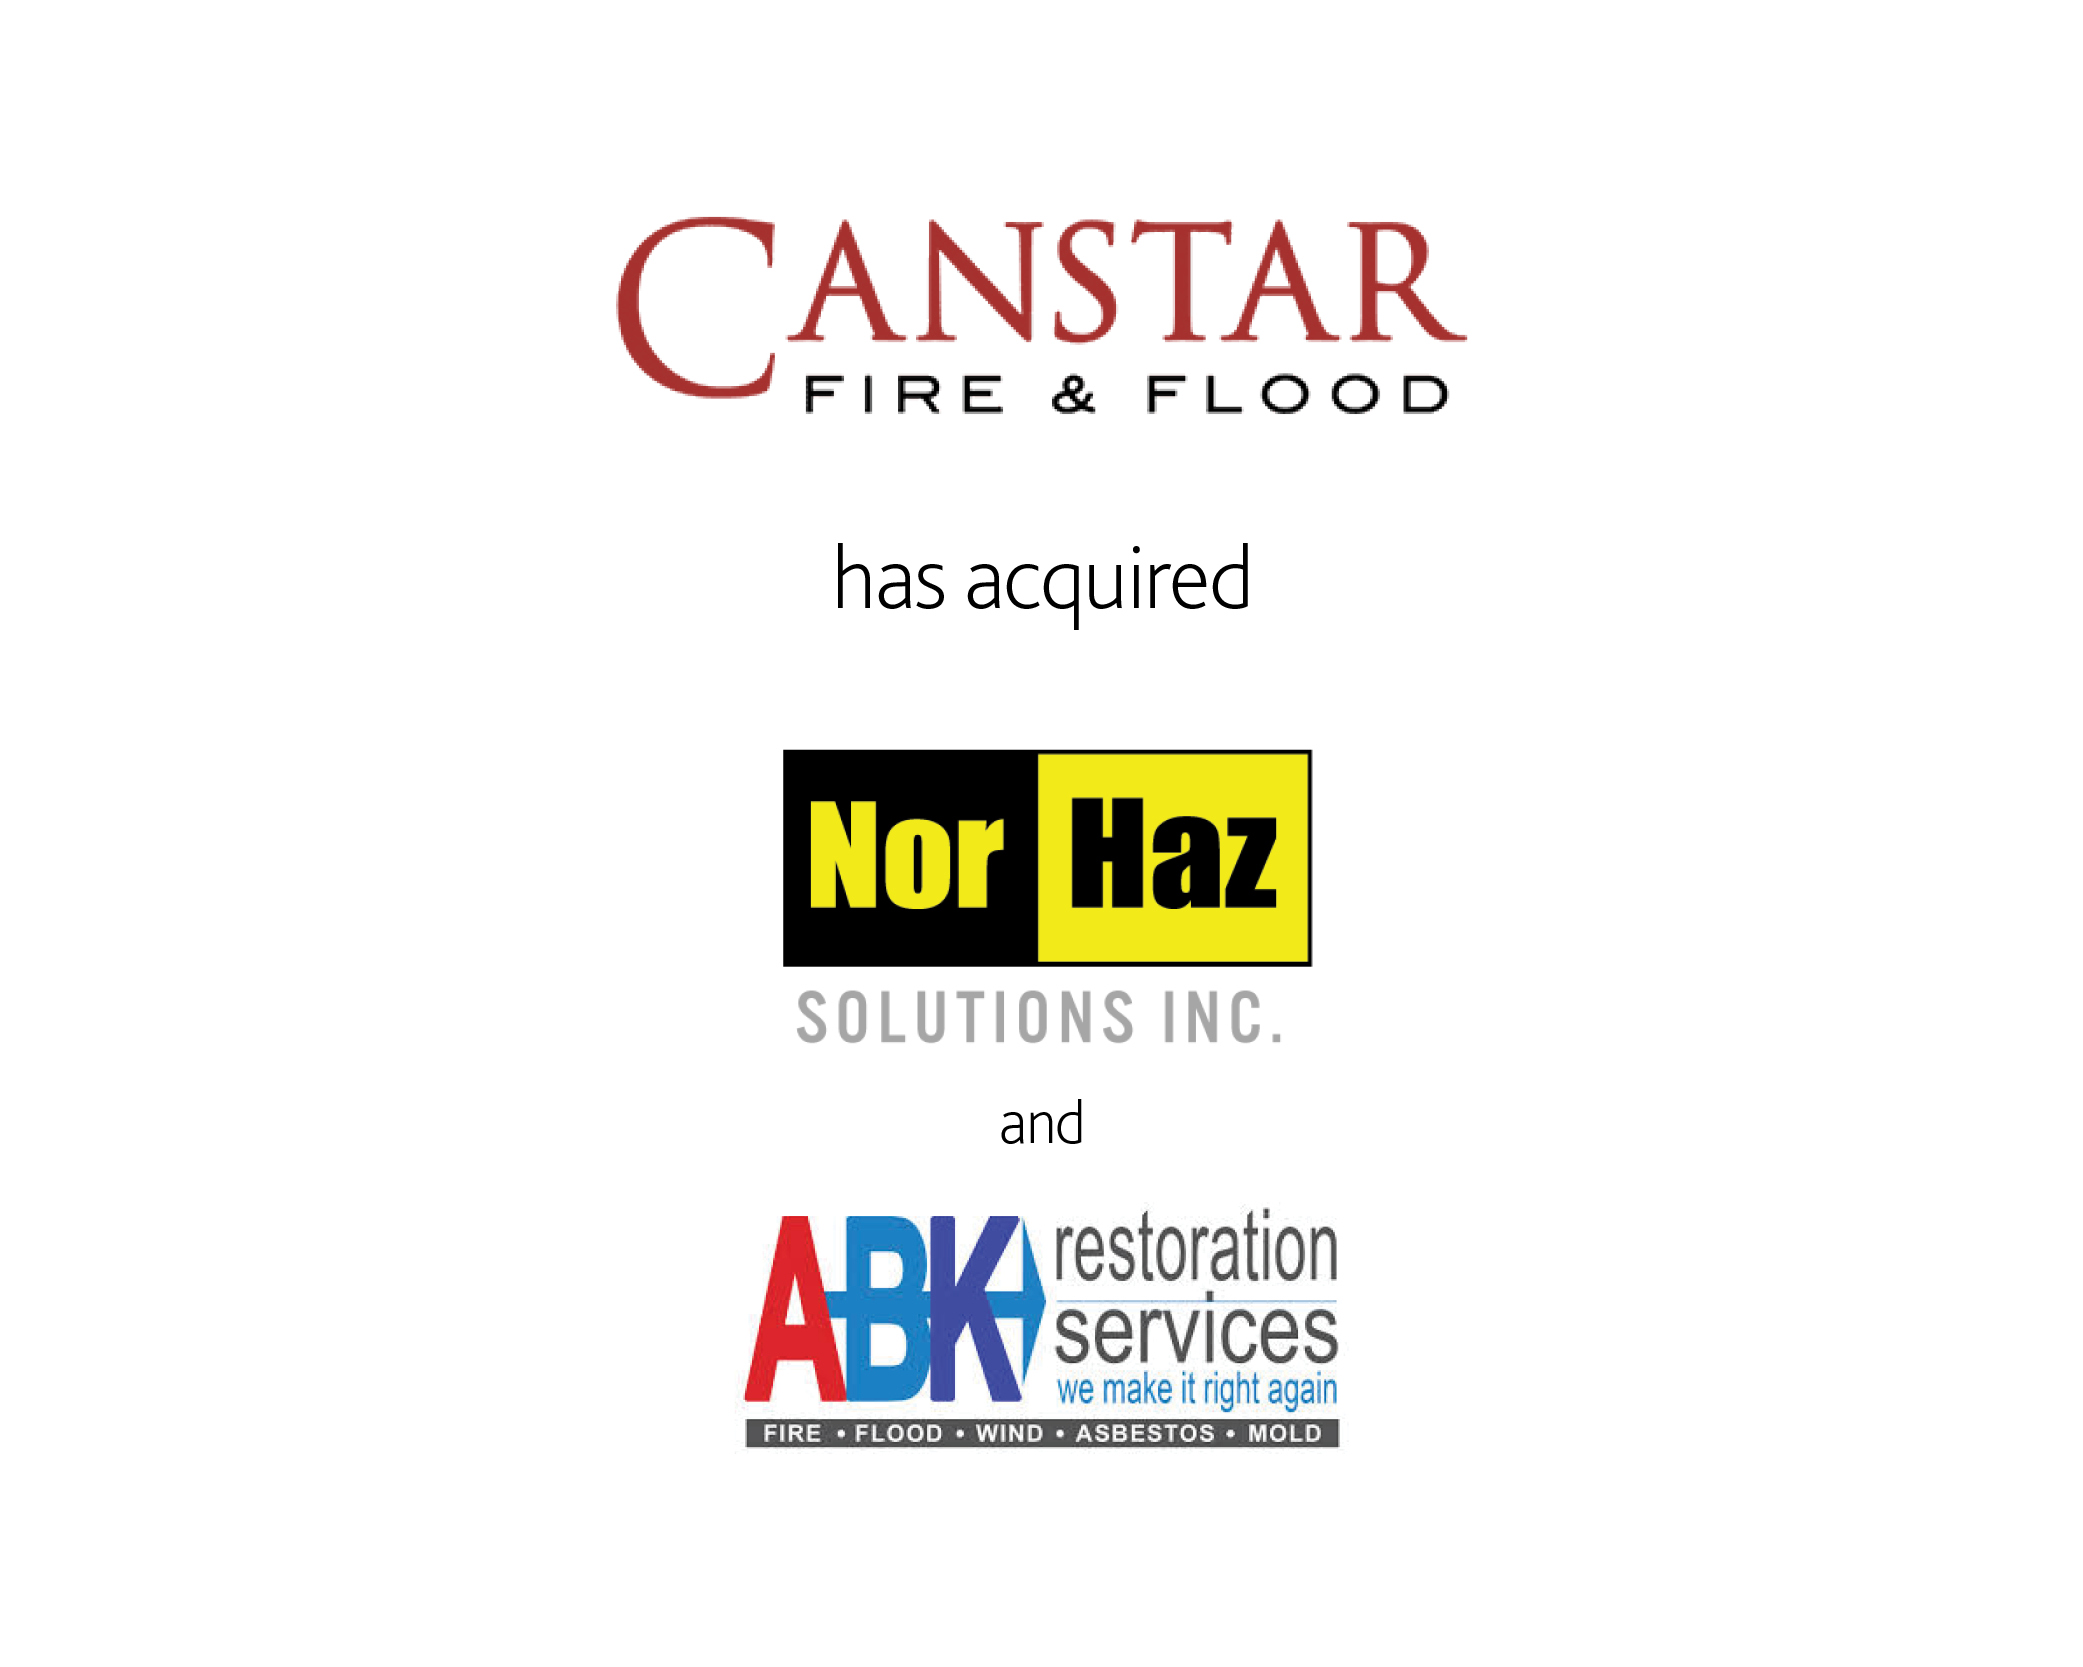 Canstar Fire & Flood has acquired Nor Haz Solutions INC and ABK Restoration Services